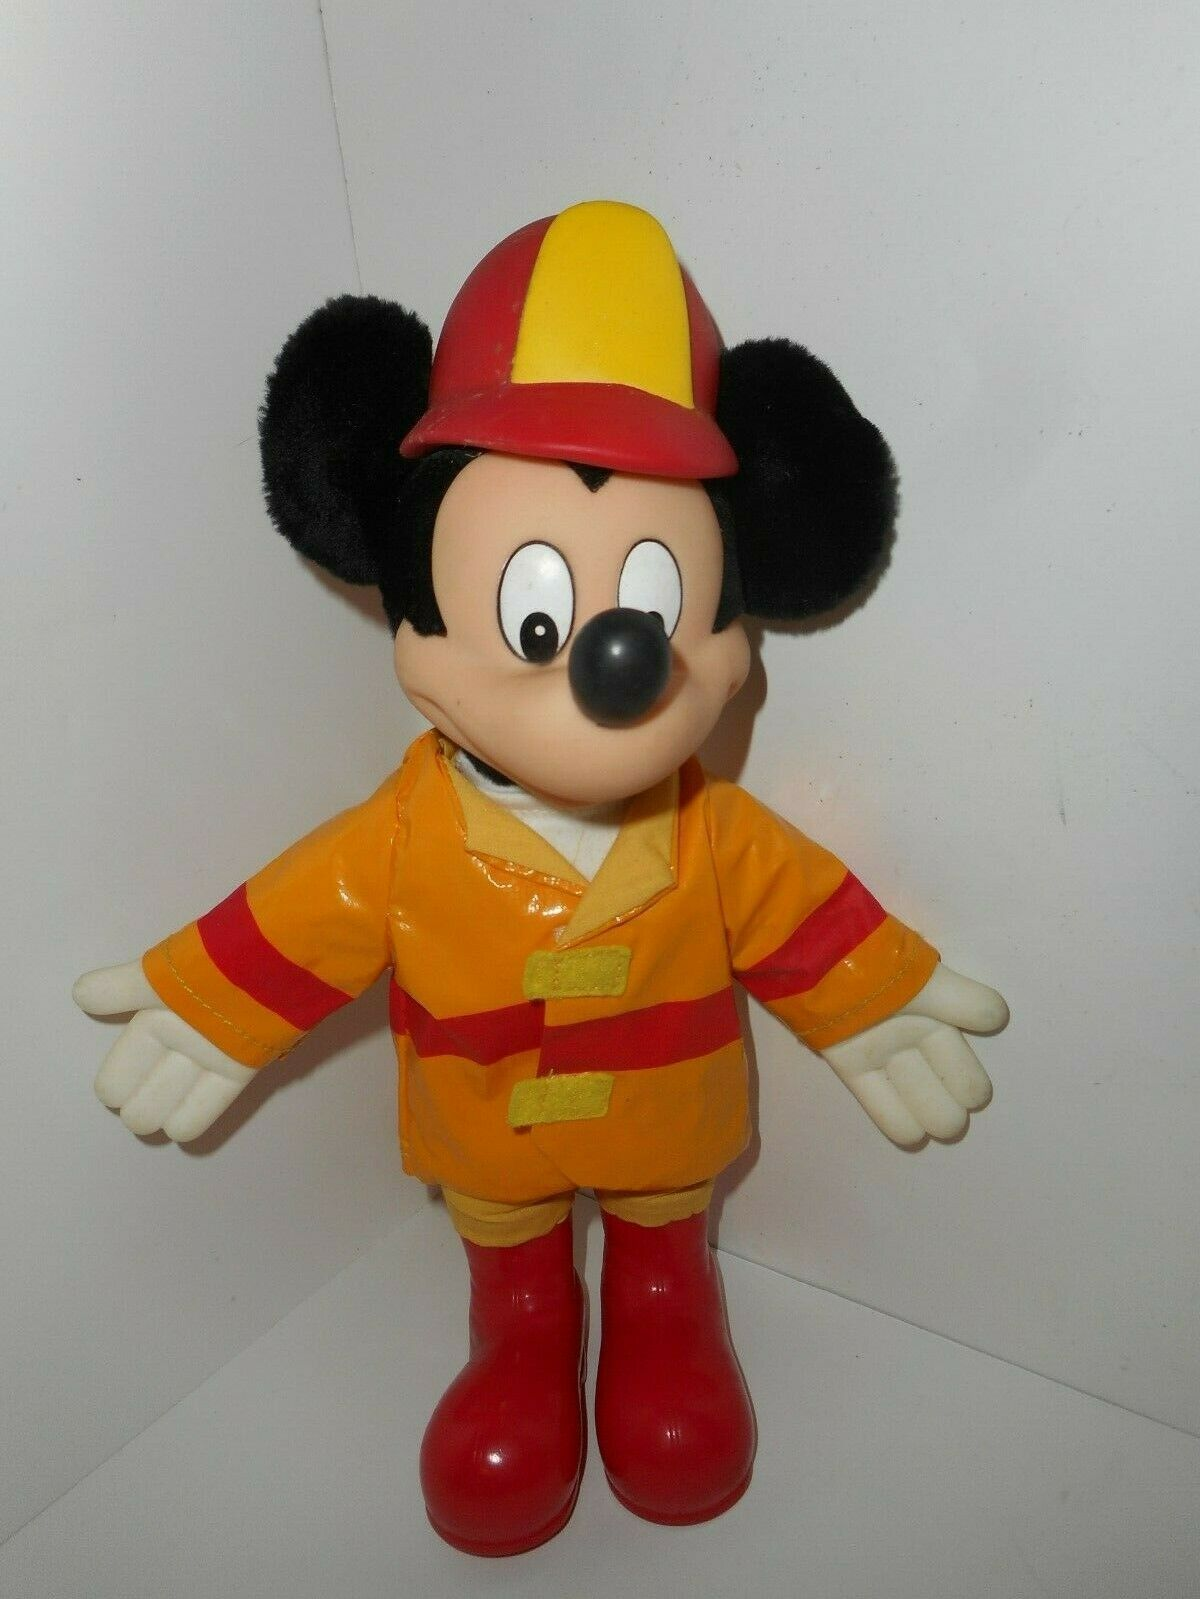 Vintage Disney Applause Mickey Mouse Firefighter Fireman Vinyl Plush Toy Doll